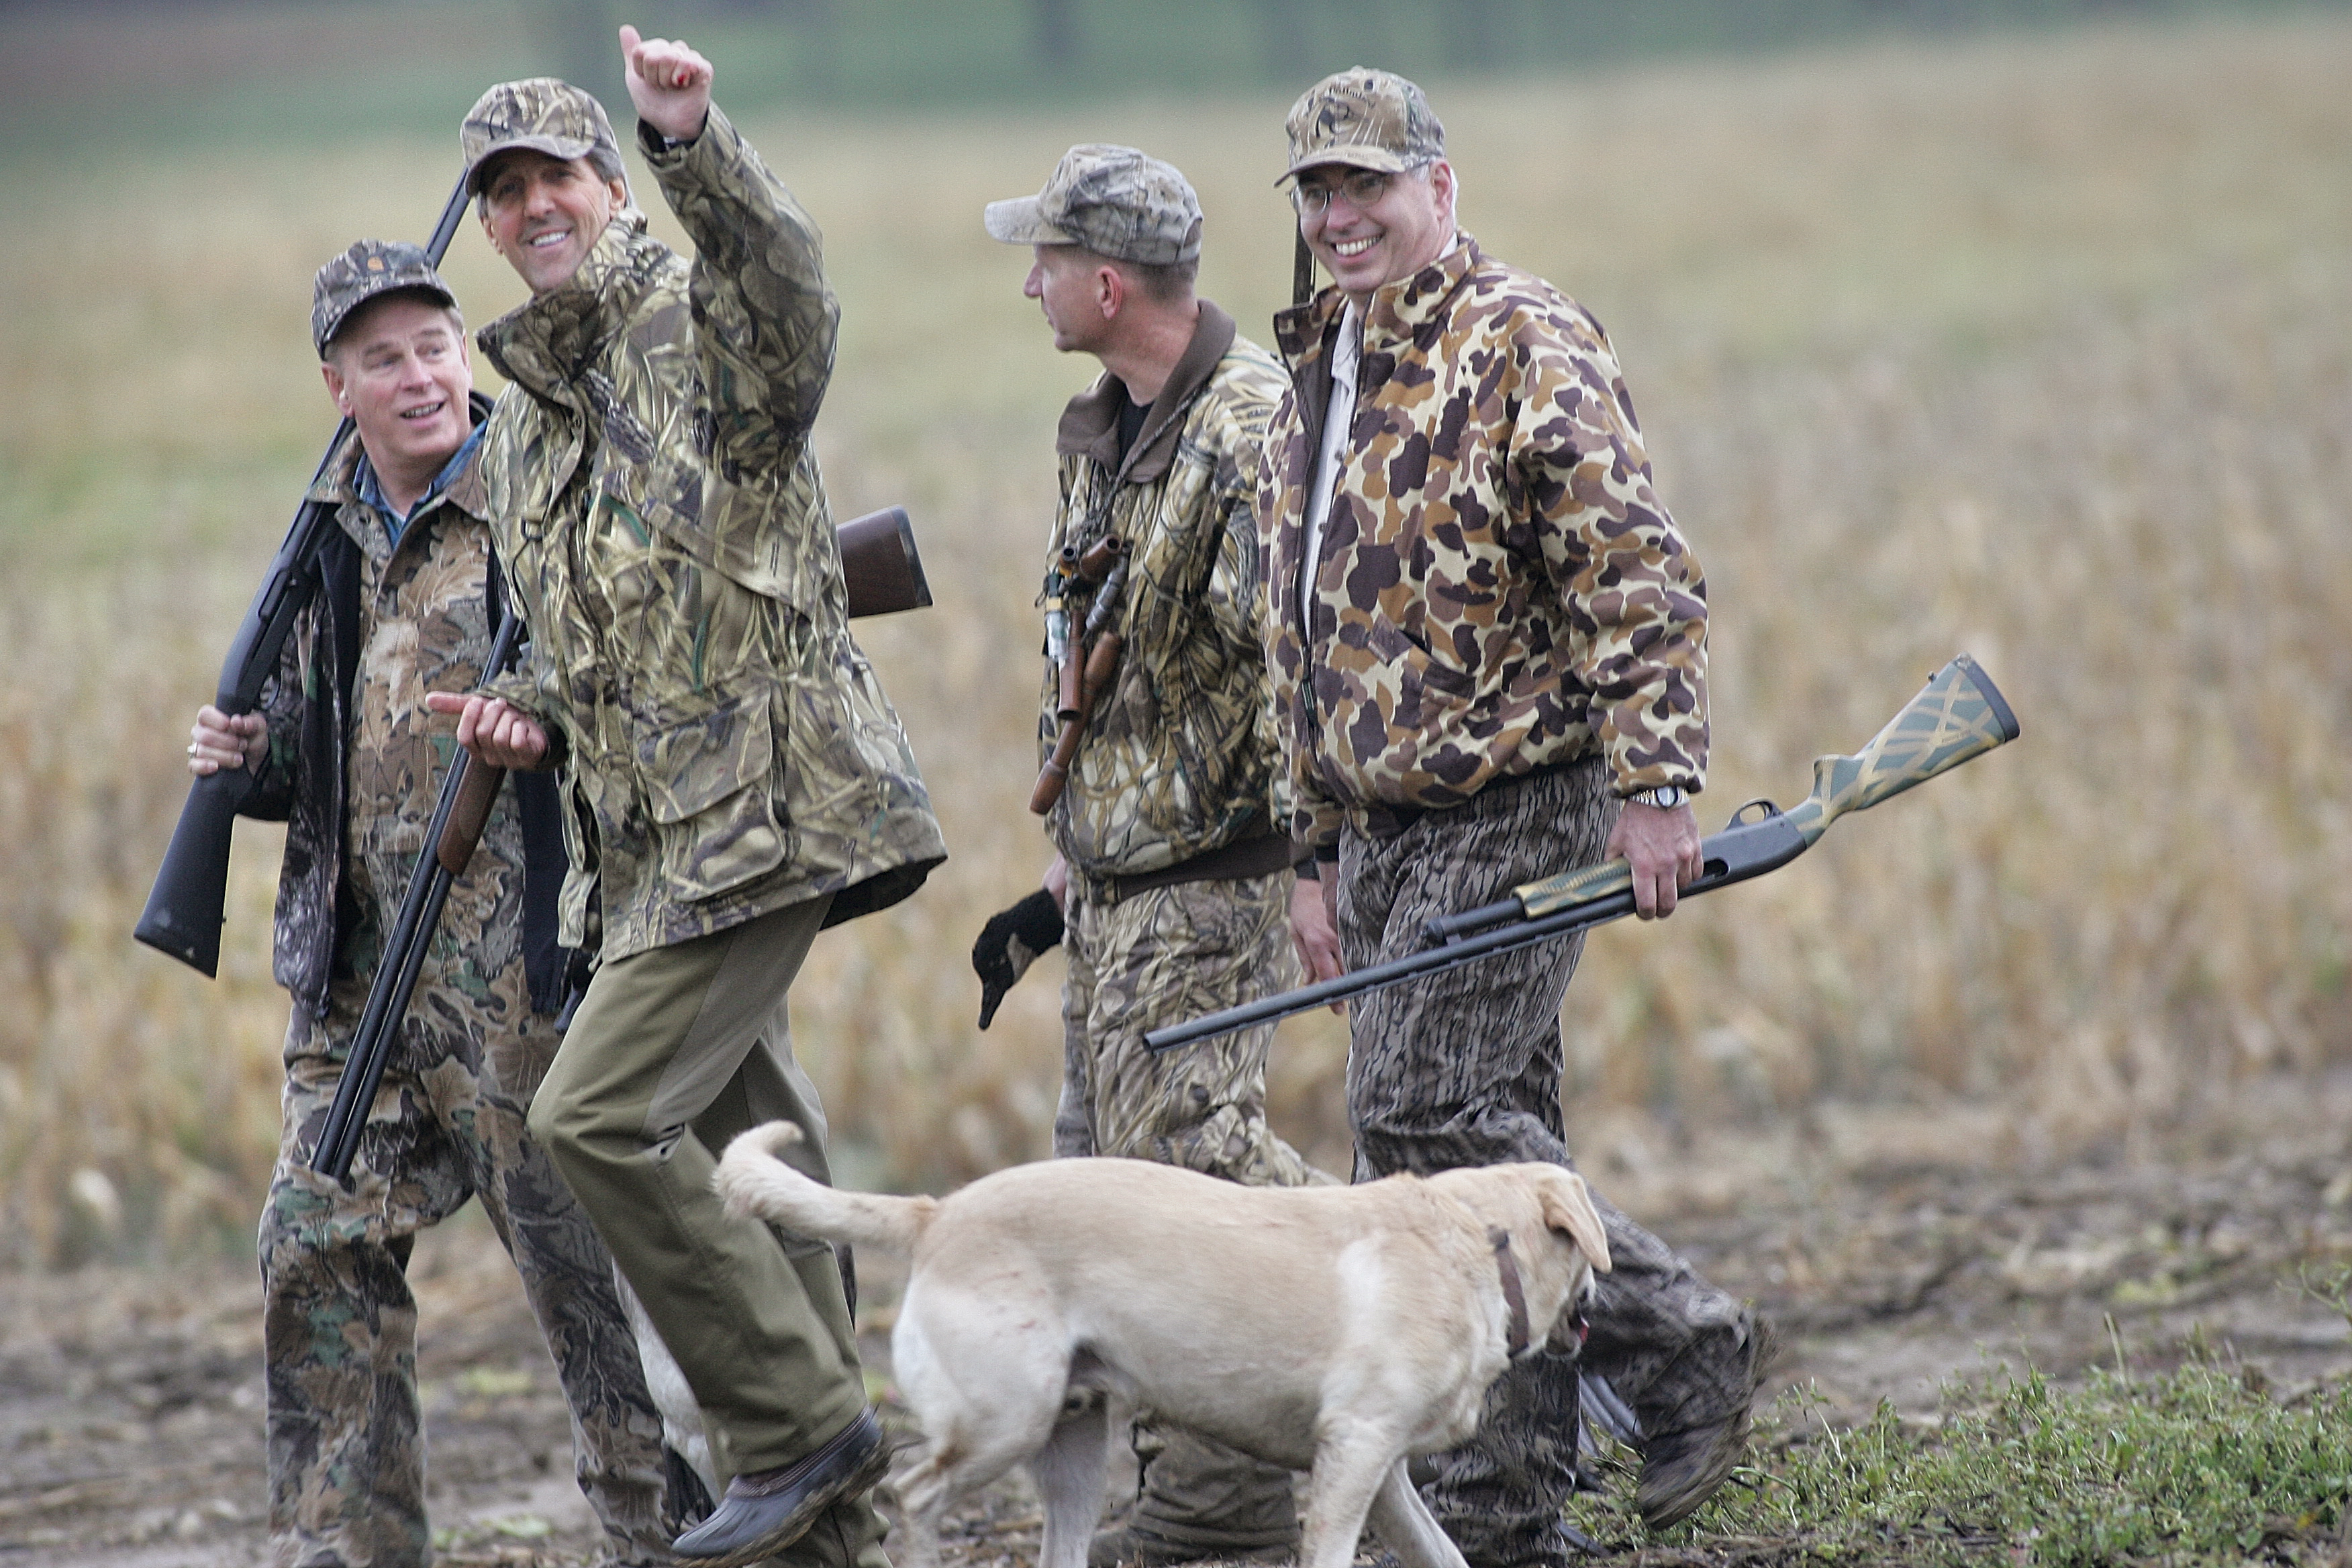 What is a good hook for a persuasive essay on pro hunting?